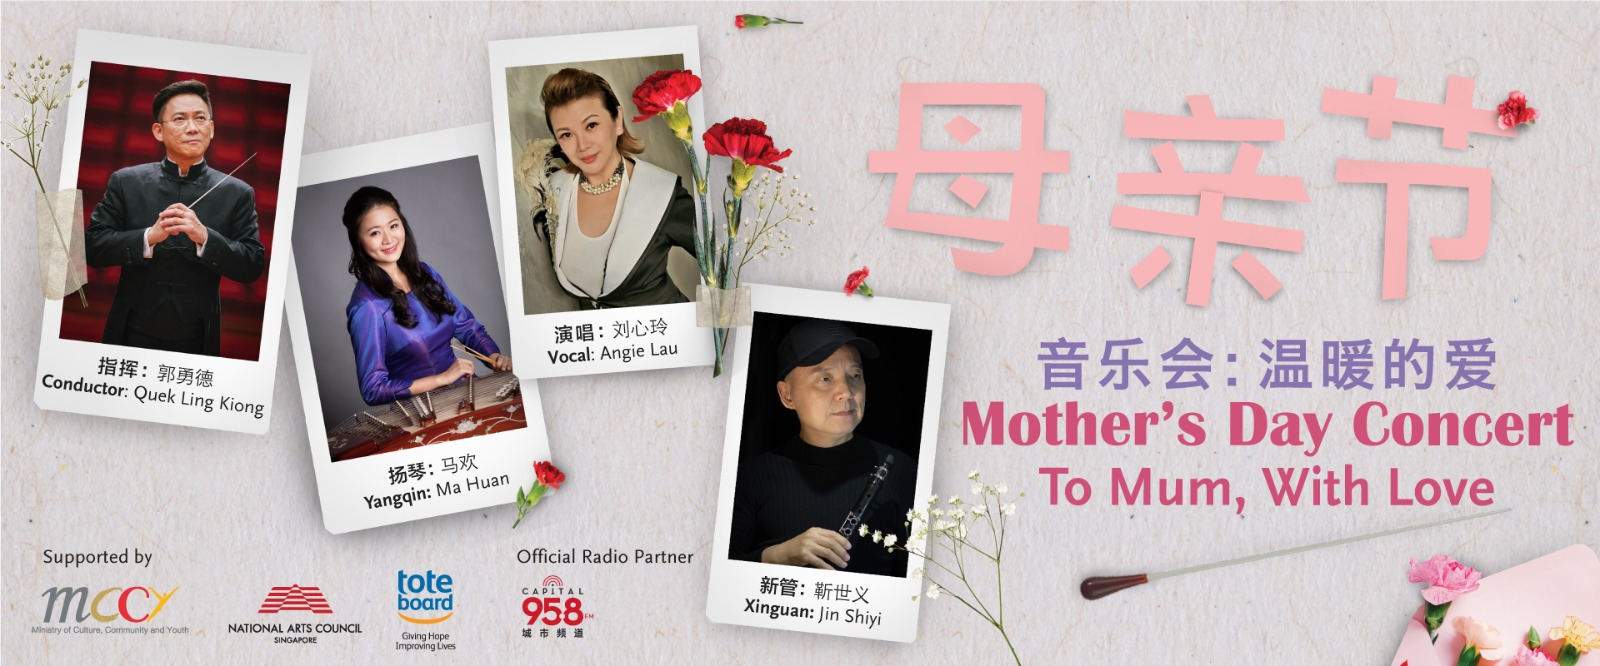 SCO_Mothers-Day_1920x800 Singapore Chinese Orchestra 新加坡华乐团